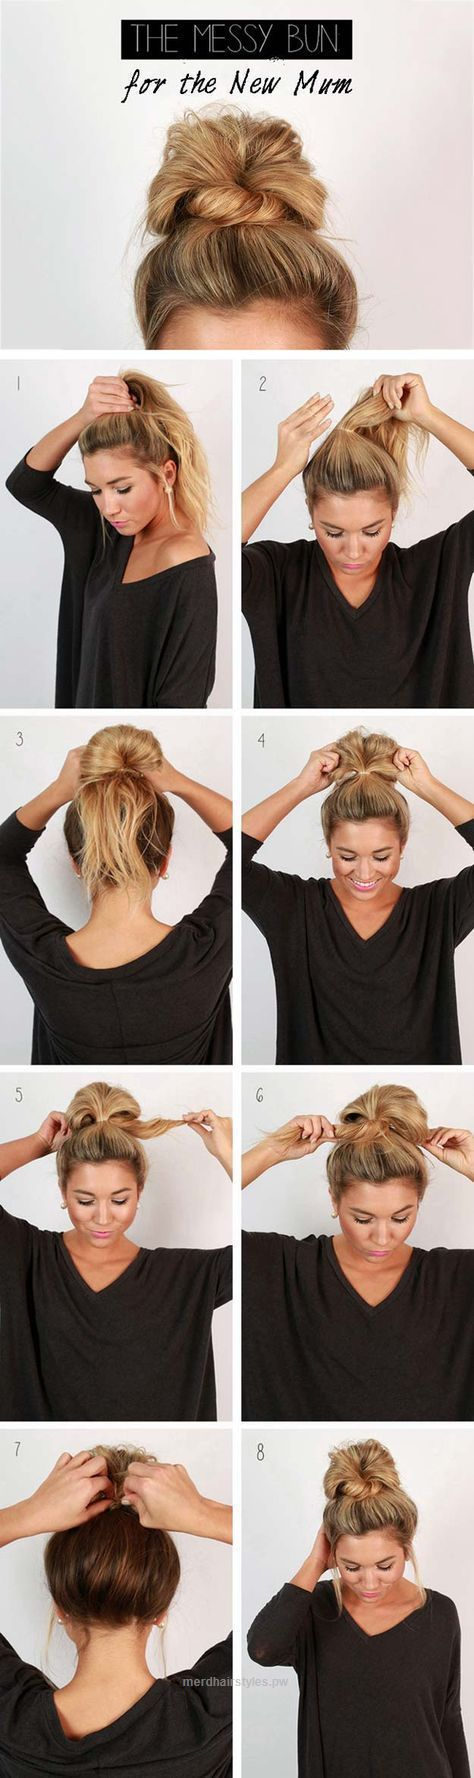 Nice Cool and Easy DIY Hairstyles – Messy Bun – Quick and Easy Ideas for Back to School Styles for Medium, Short and Long Hair – Fun Tips and Best Step by Step Tutorials for Teens, Prom, Weddings, Special Occasions and Work. Up dos, Braids, Top Knots and Buns, Super Summ ..